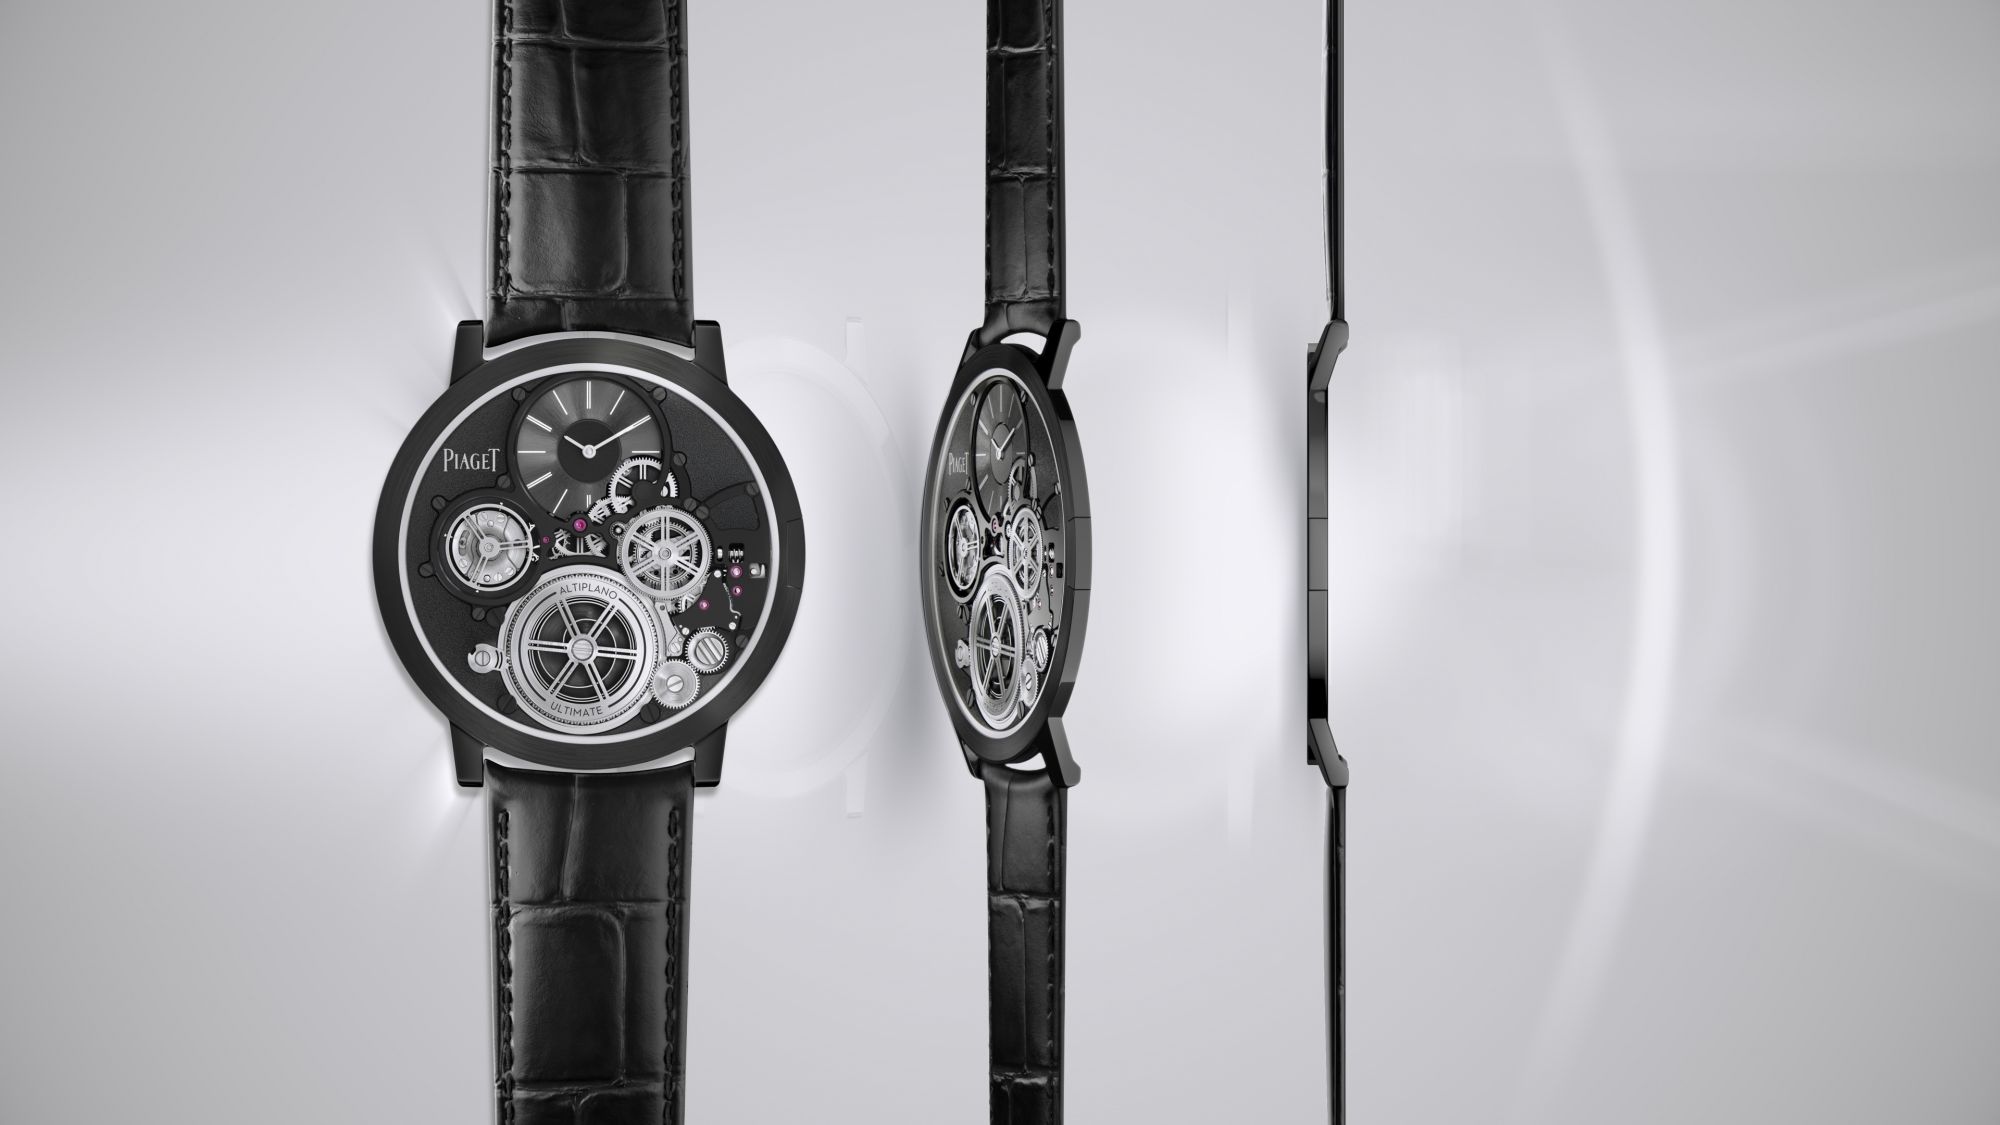 The World's Thinnest Watch Is Now Available For Purchase